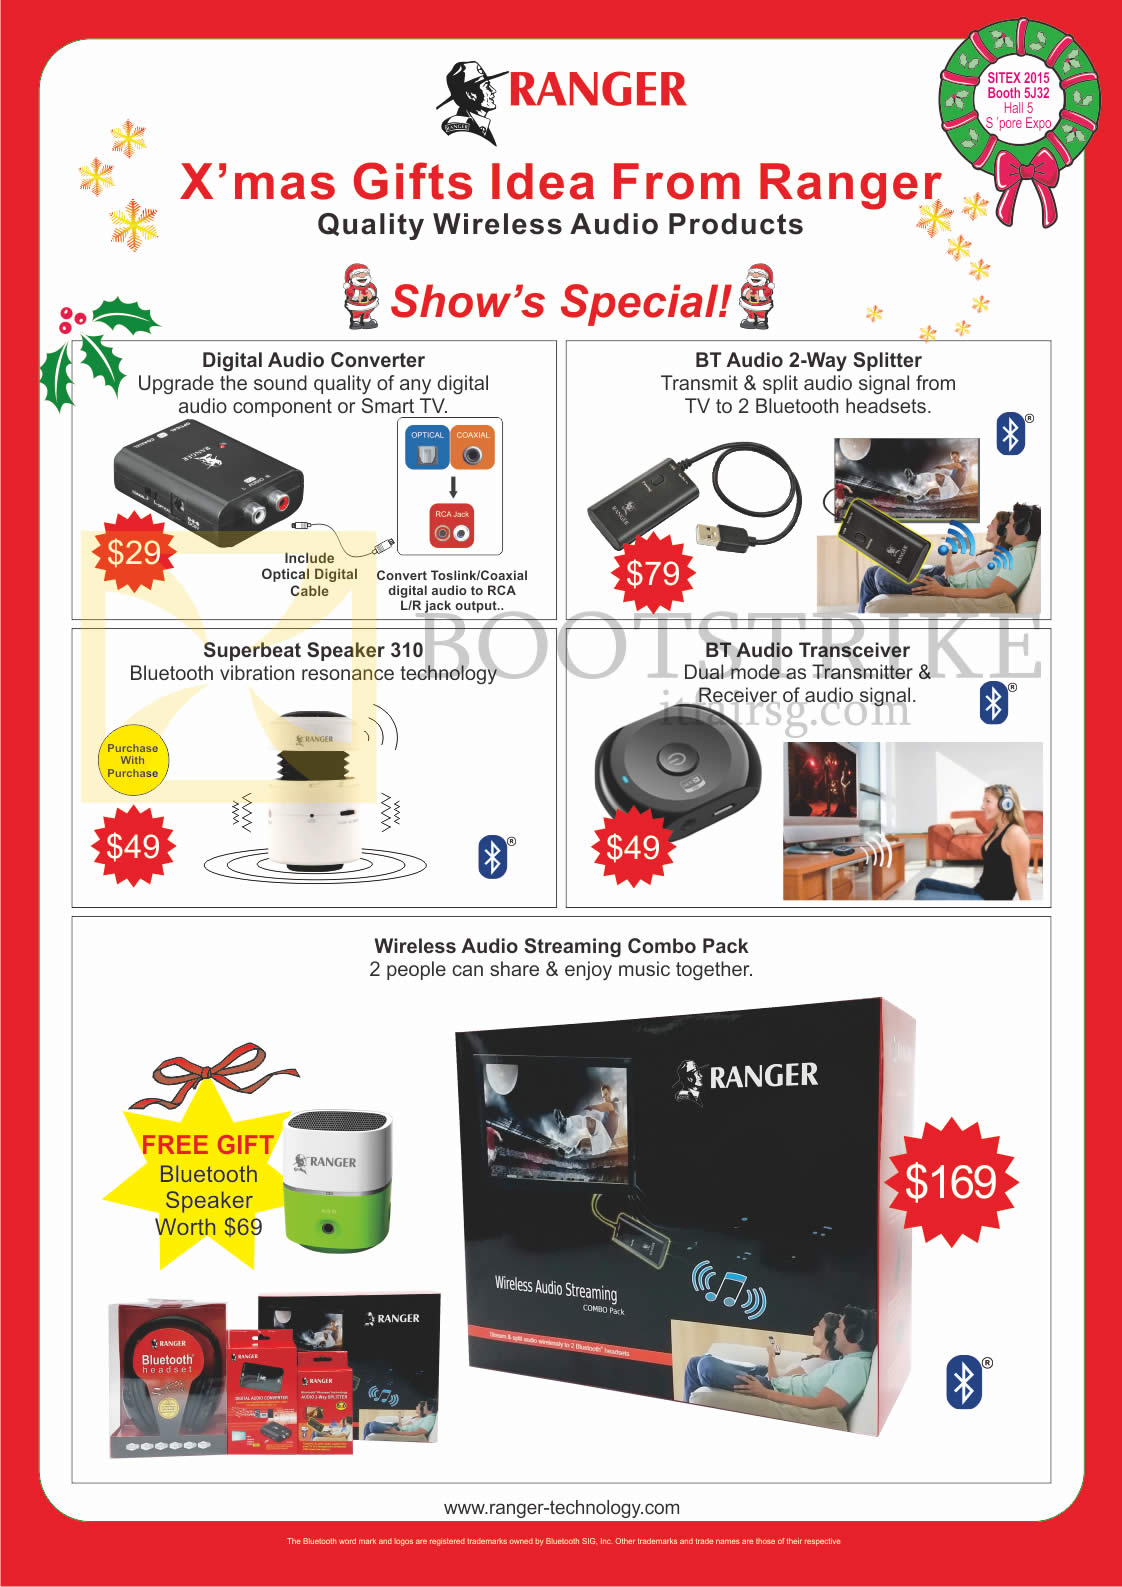 SITEX 2015 price list image brochure of Ranger Accessories Digital Audio Converter, BT Audio 2 Way Splitter, Superbeat Speaker 310, BT Audio Transceiver, Wireless Audio Streaming Combo Pack